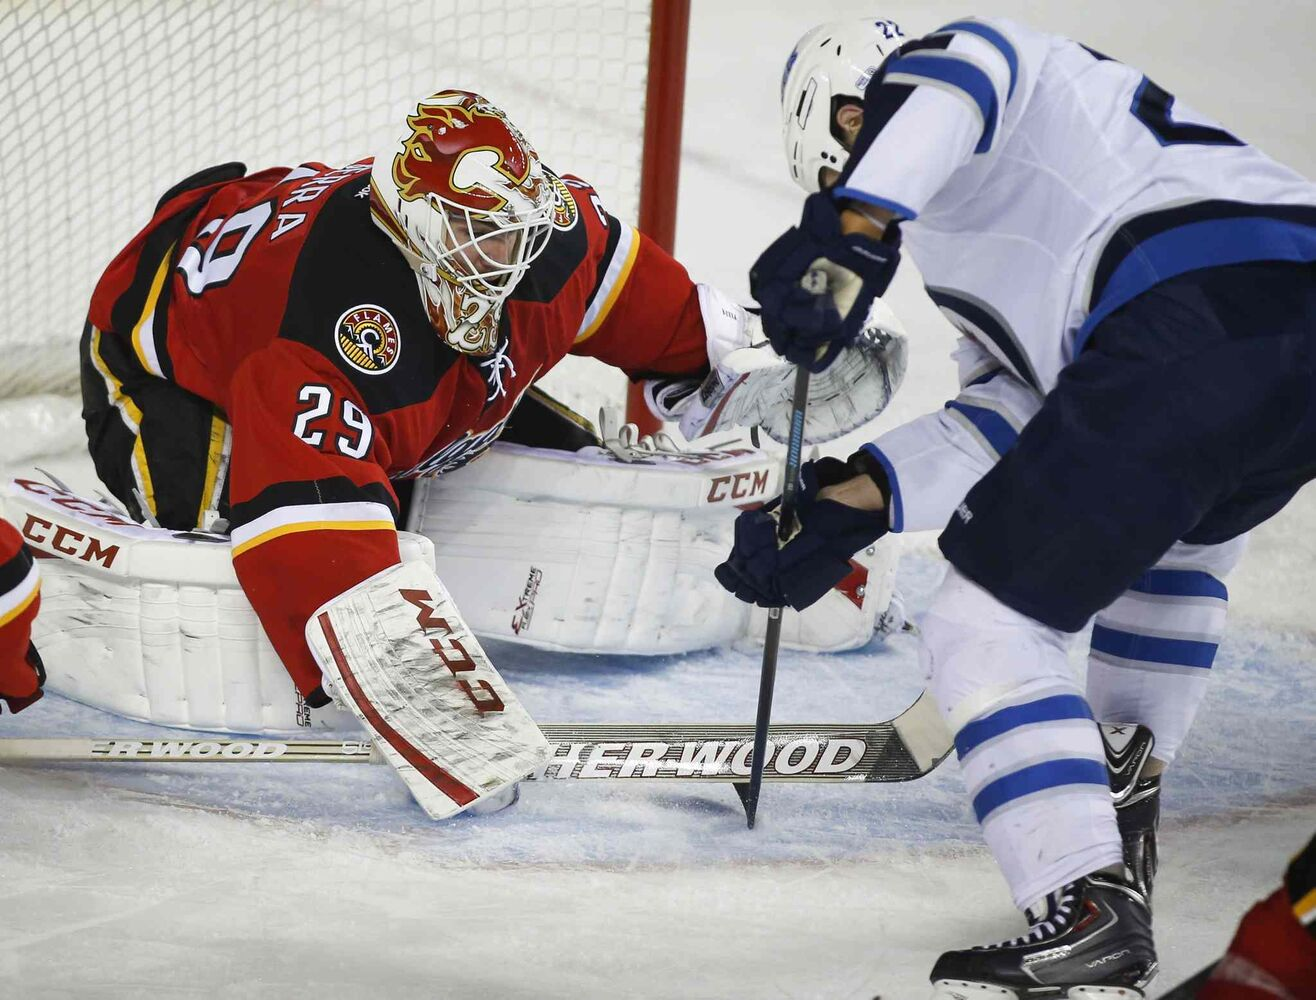 Winnipeg Jets' Chris Thorburn, right, has his stick trapped by Calgary Flames' goalie Reto Berra during the second period Thursday.